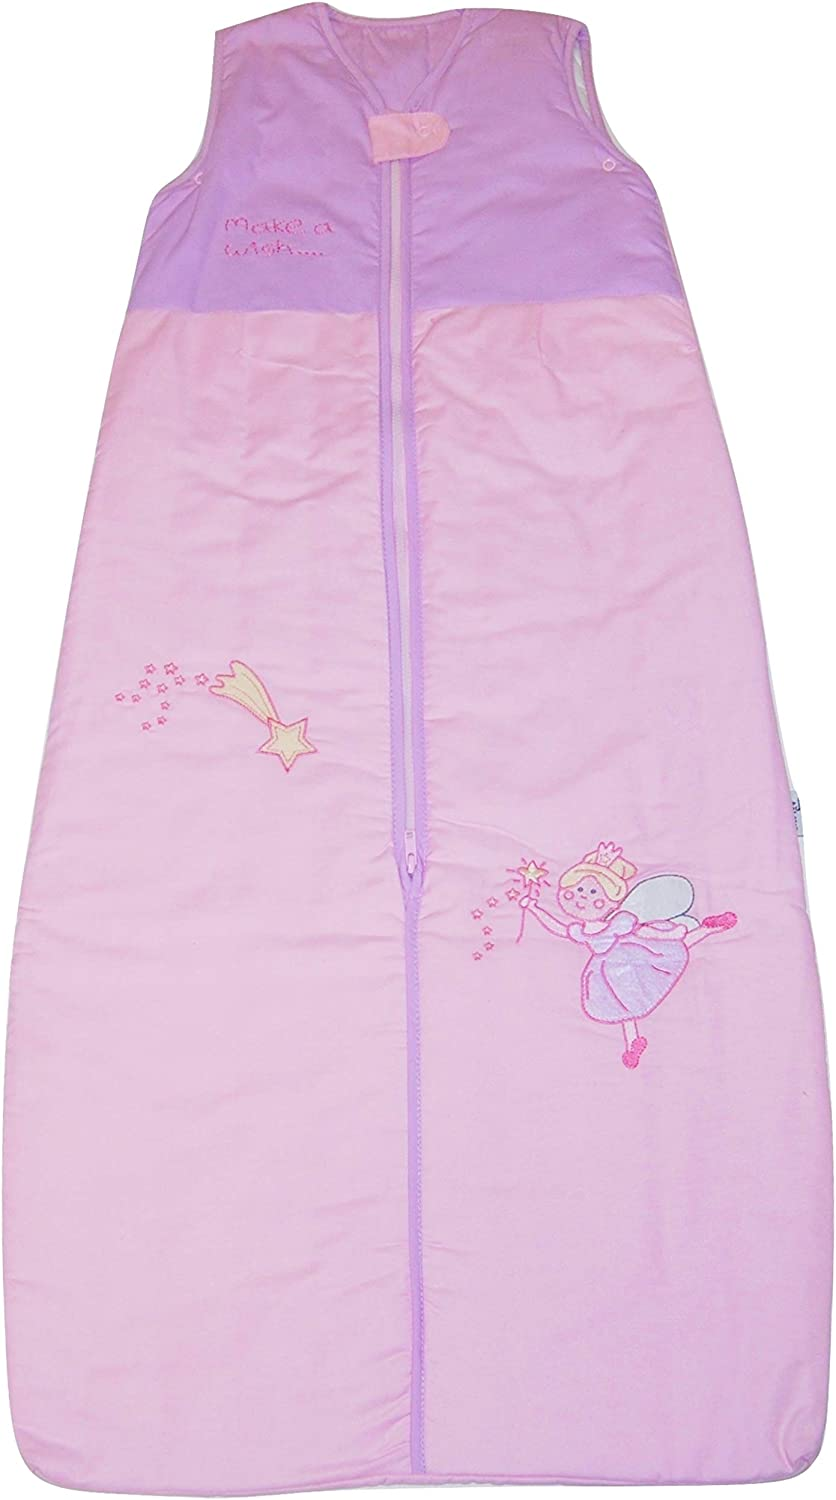 Owl, 0-6 Months Baby Girl Boy Children Sleeping Bag Various Sizes and Designs